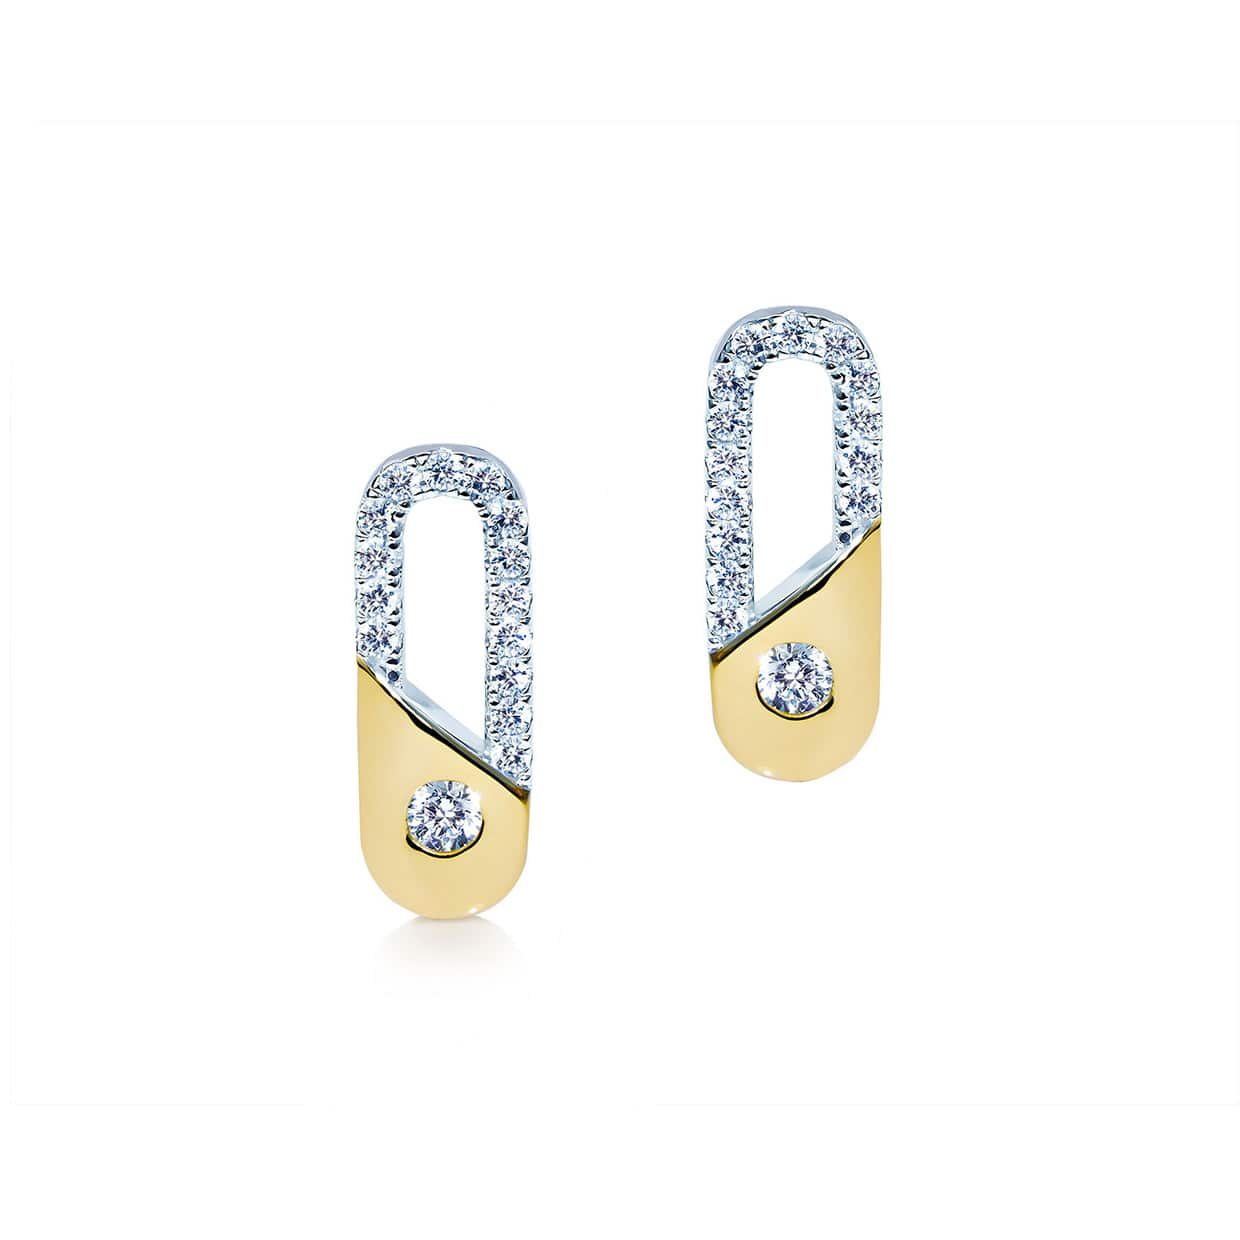 Abelstedt A Silver & Gold Clip Earrings - Abelstedt